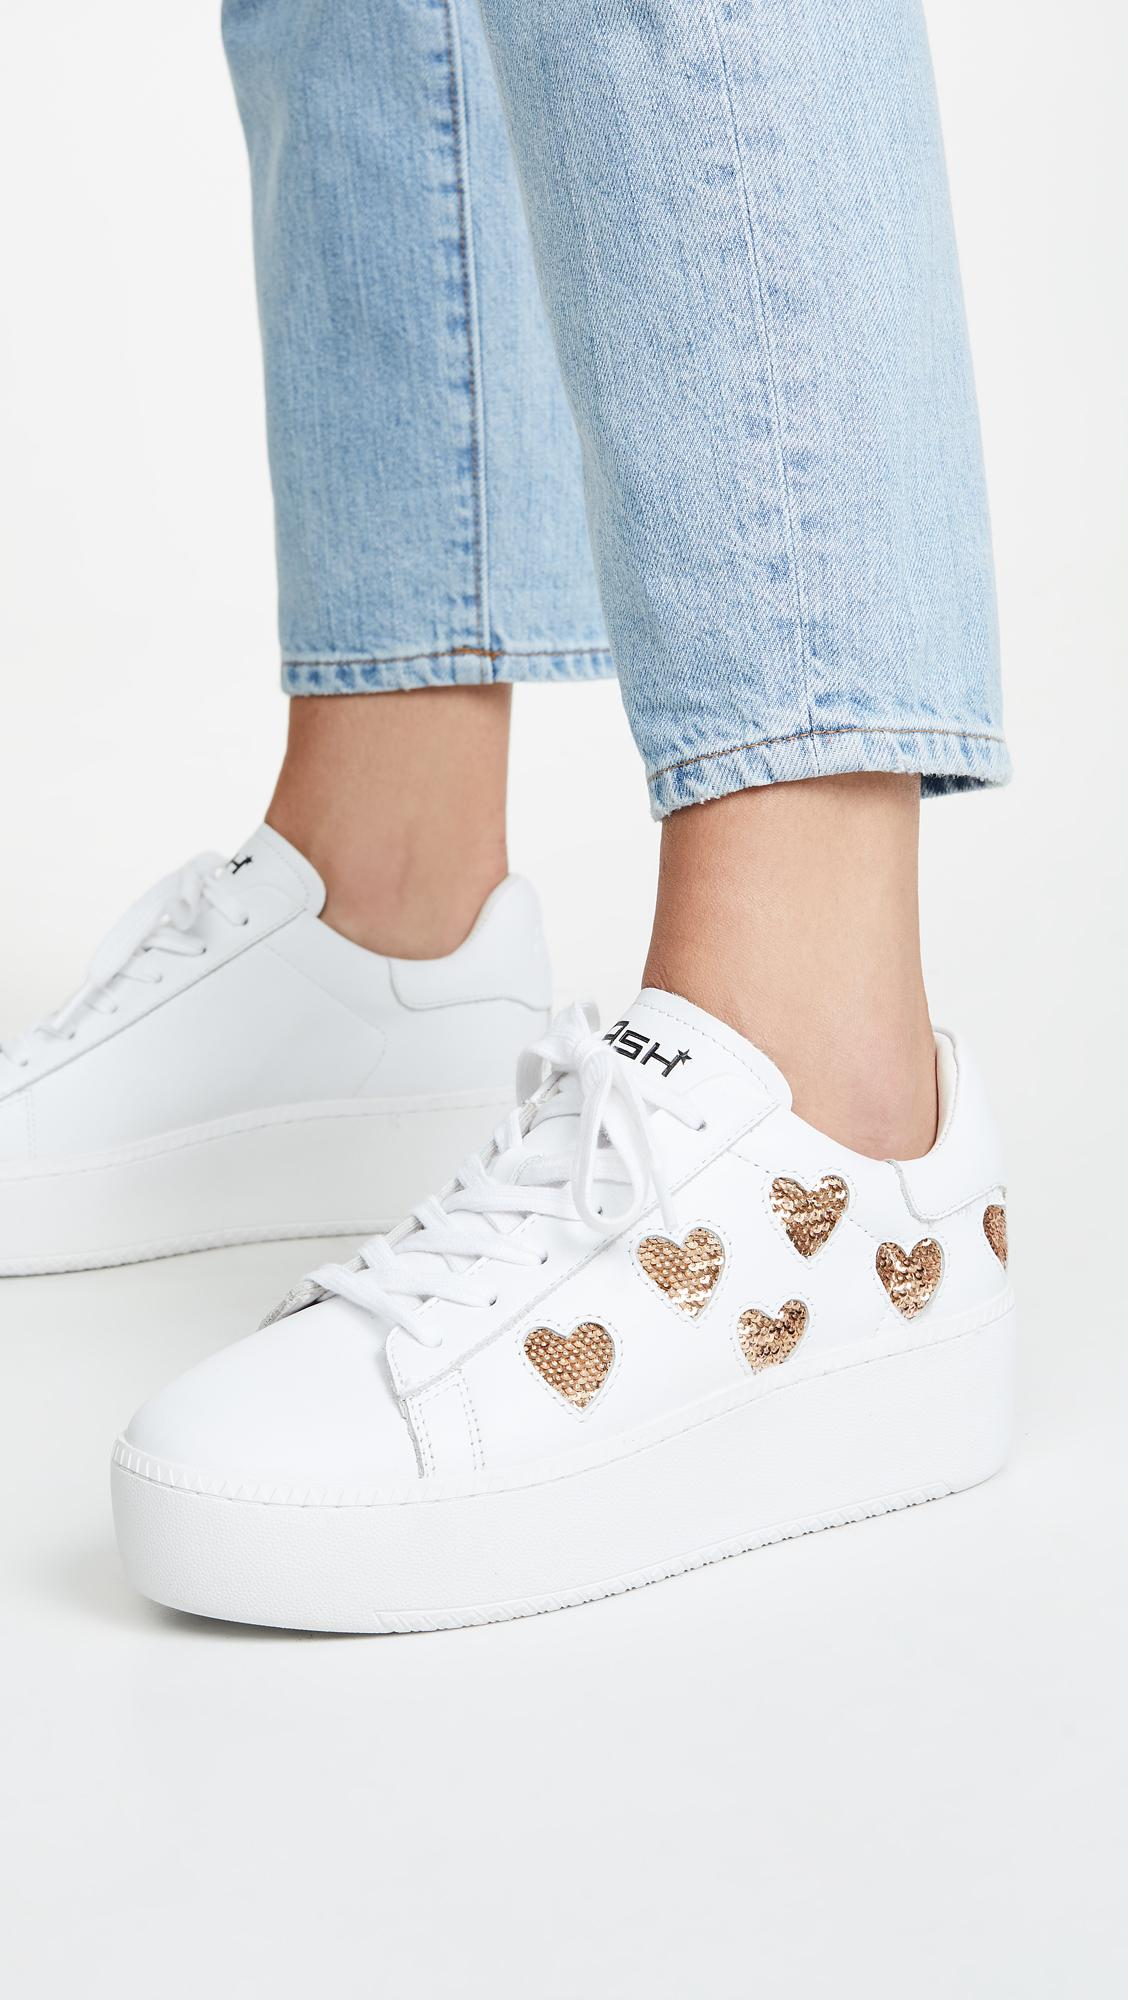 Ash Leather Cute Sneakers in White/Gold